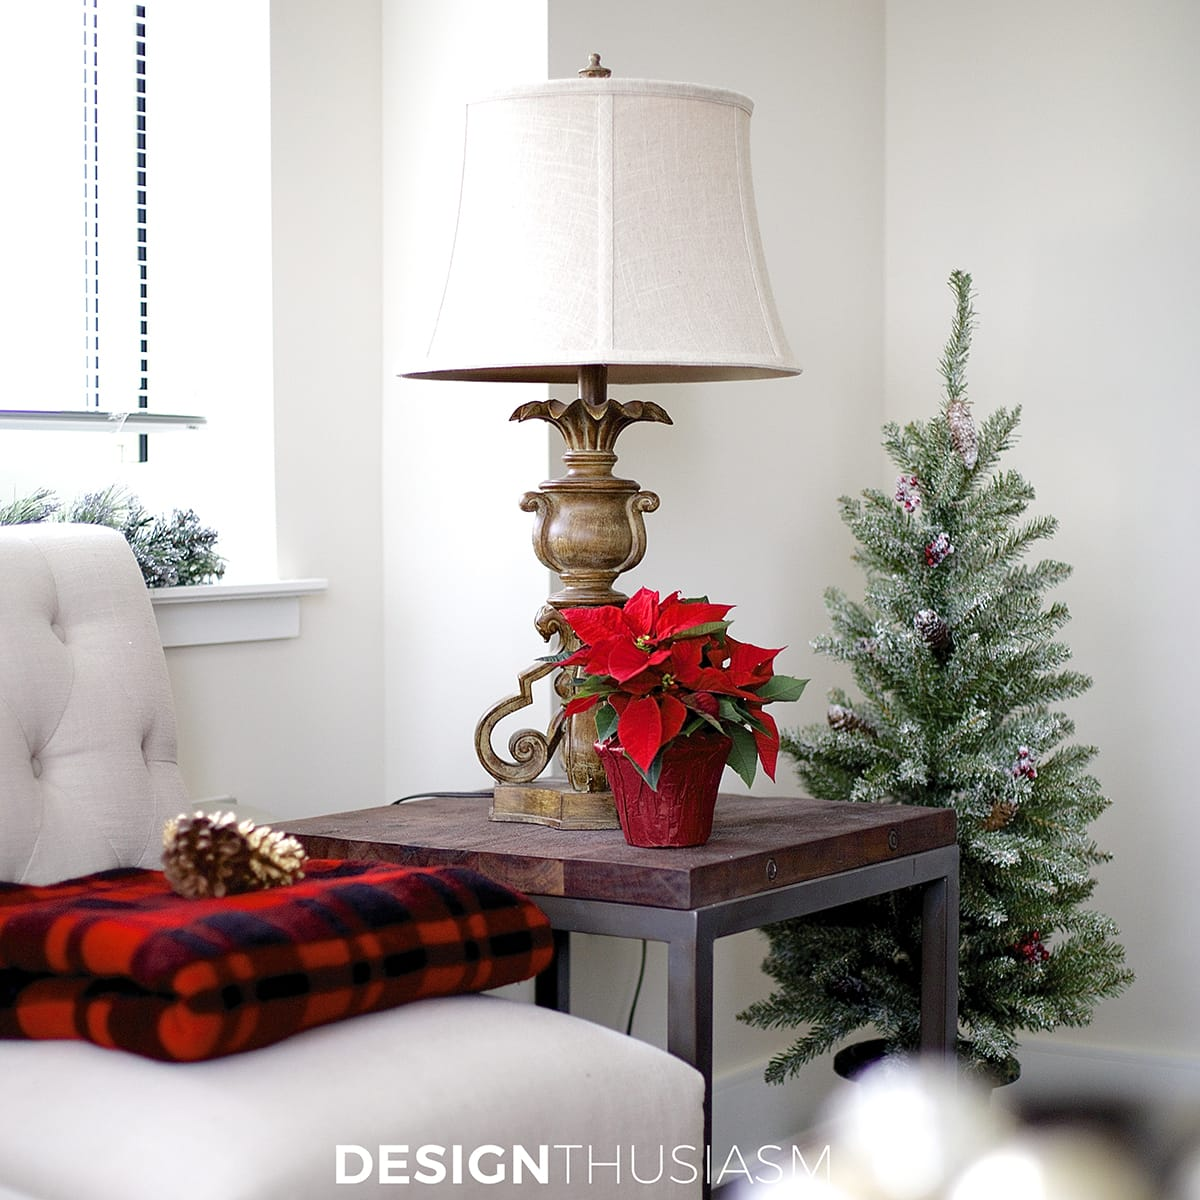 holiday decorating ideas for a small apartment designthusiasmcom - Apartment Christmas Decorations